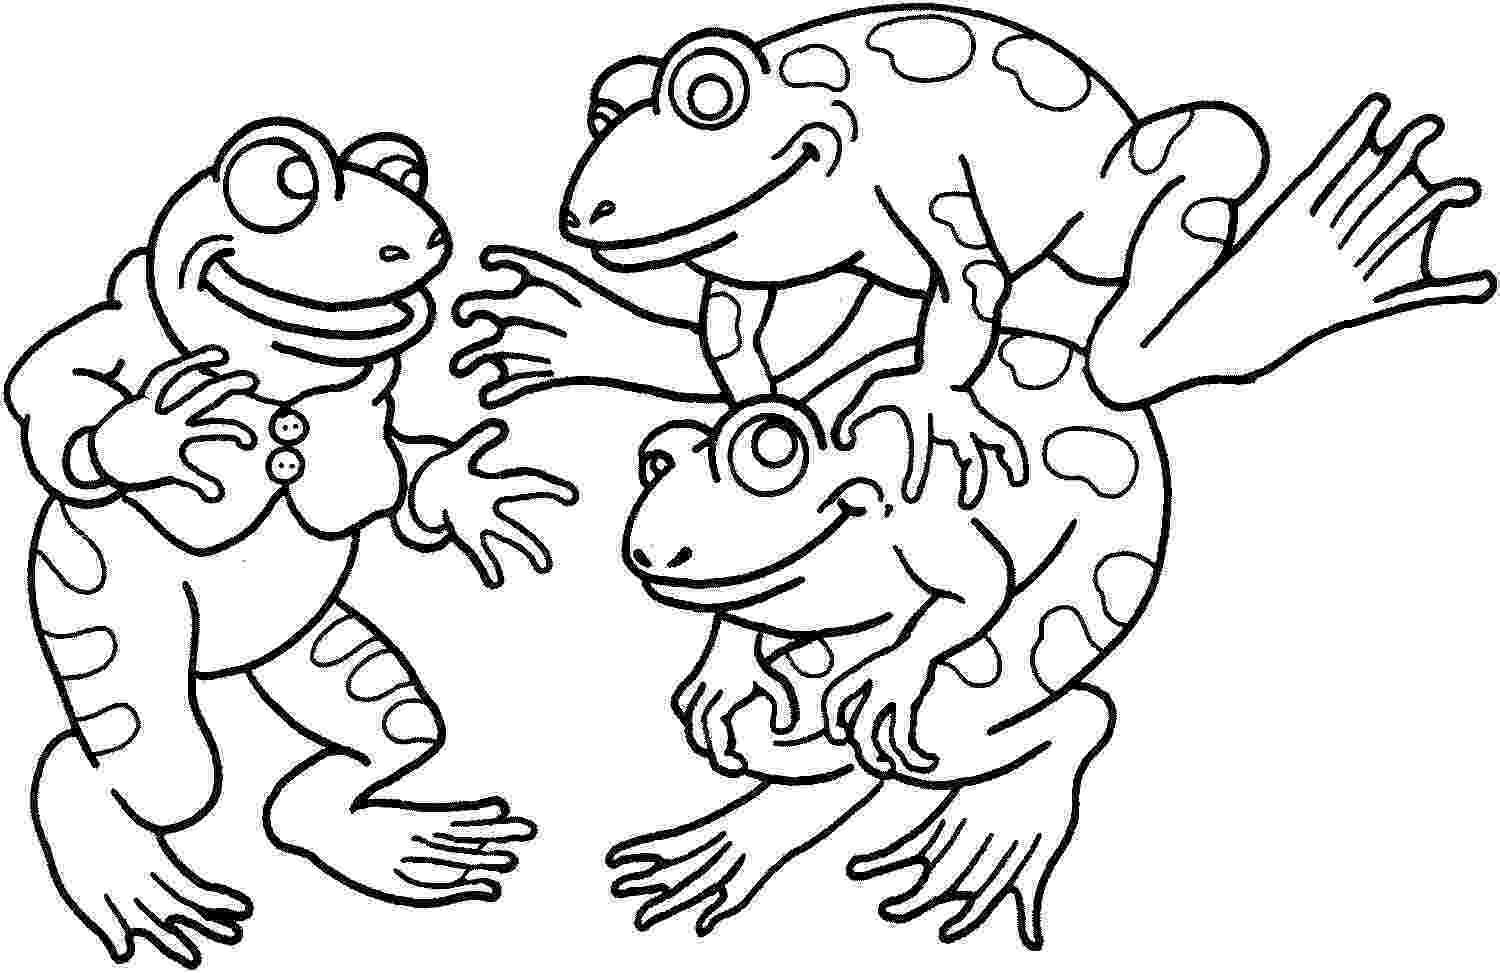 amphibian coloring pages frogs coloring pages downloadable and printable collection pages coloring amphibian